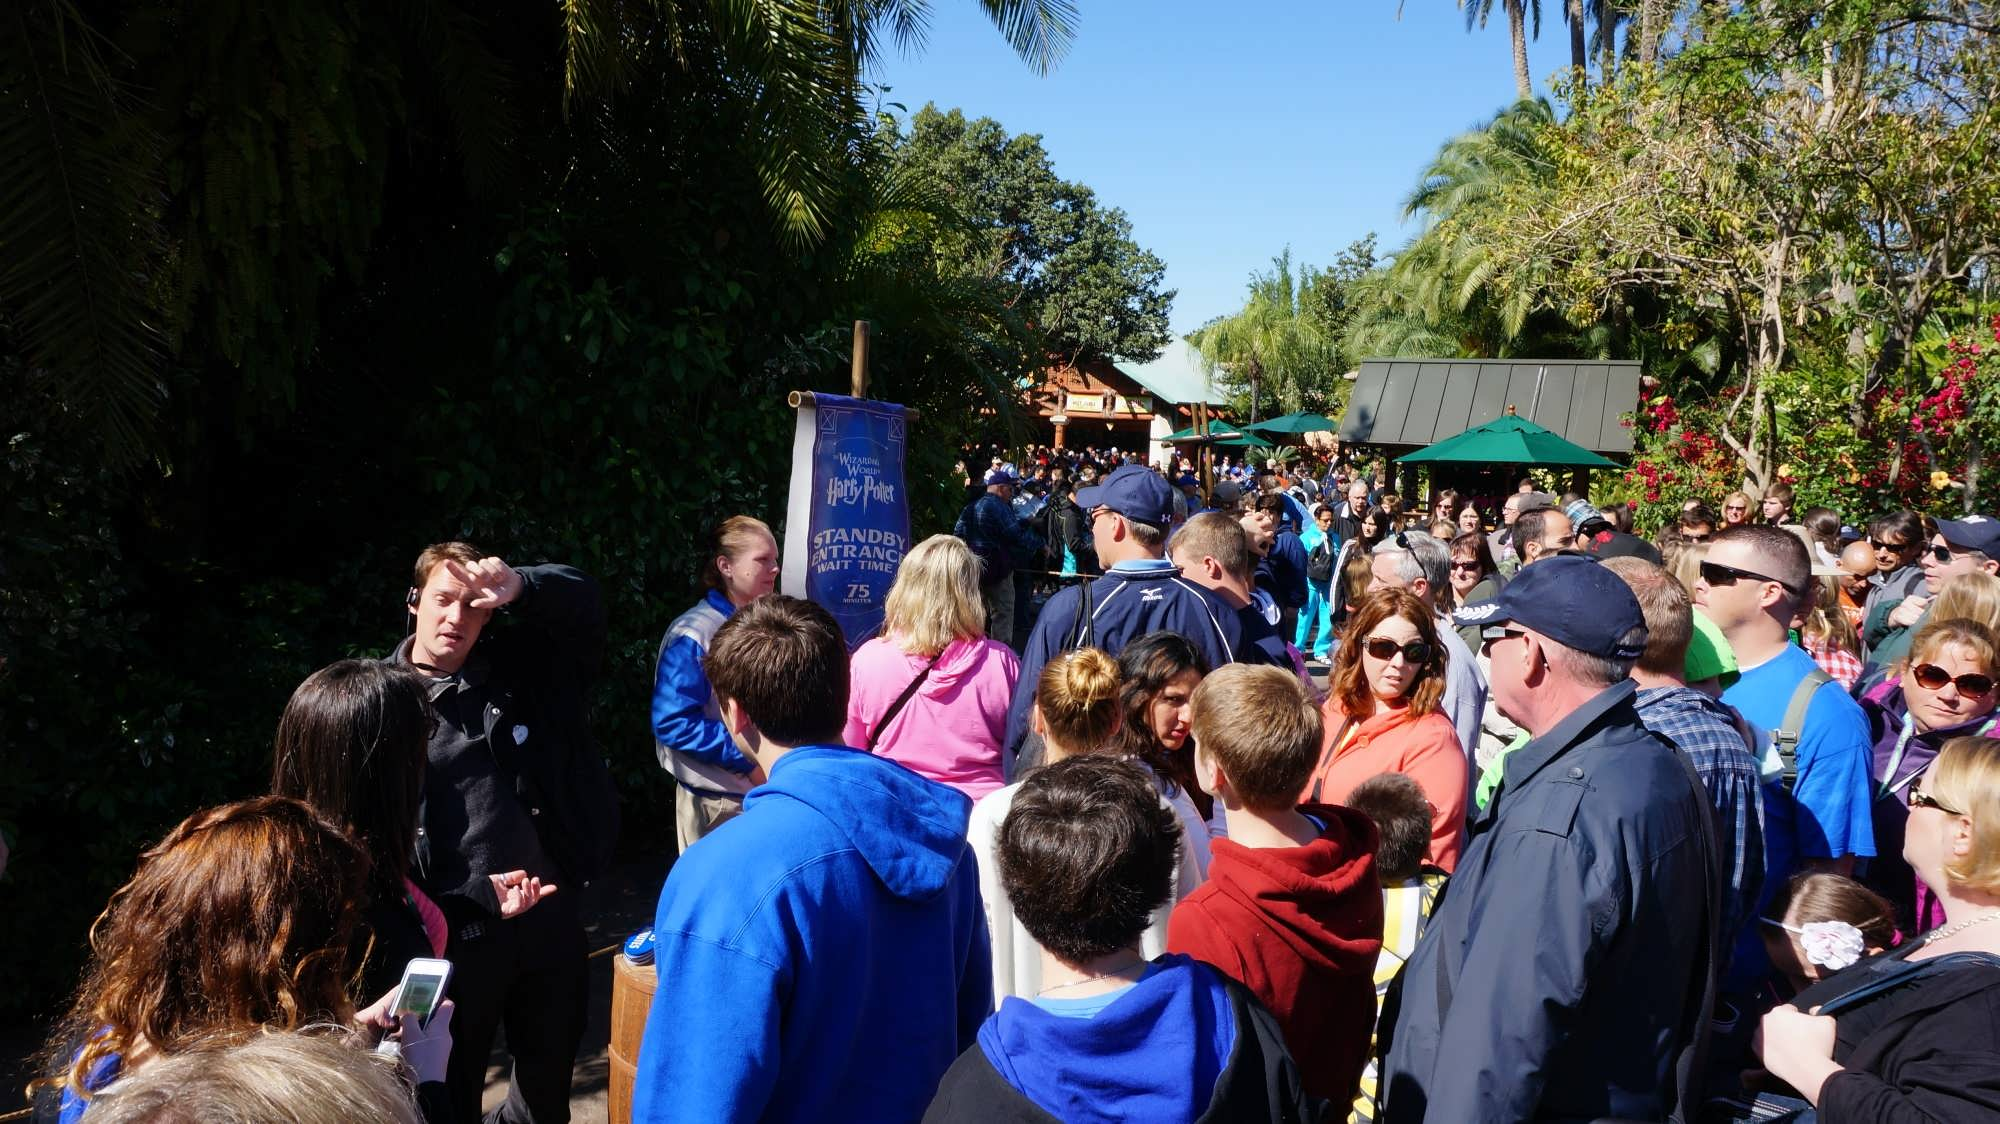 WWoHP standby line in Jurassic Park